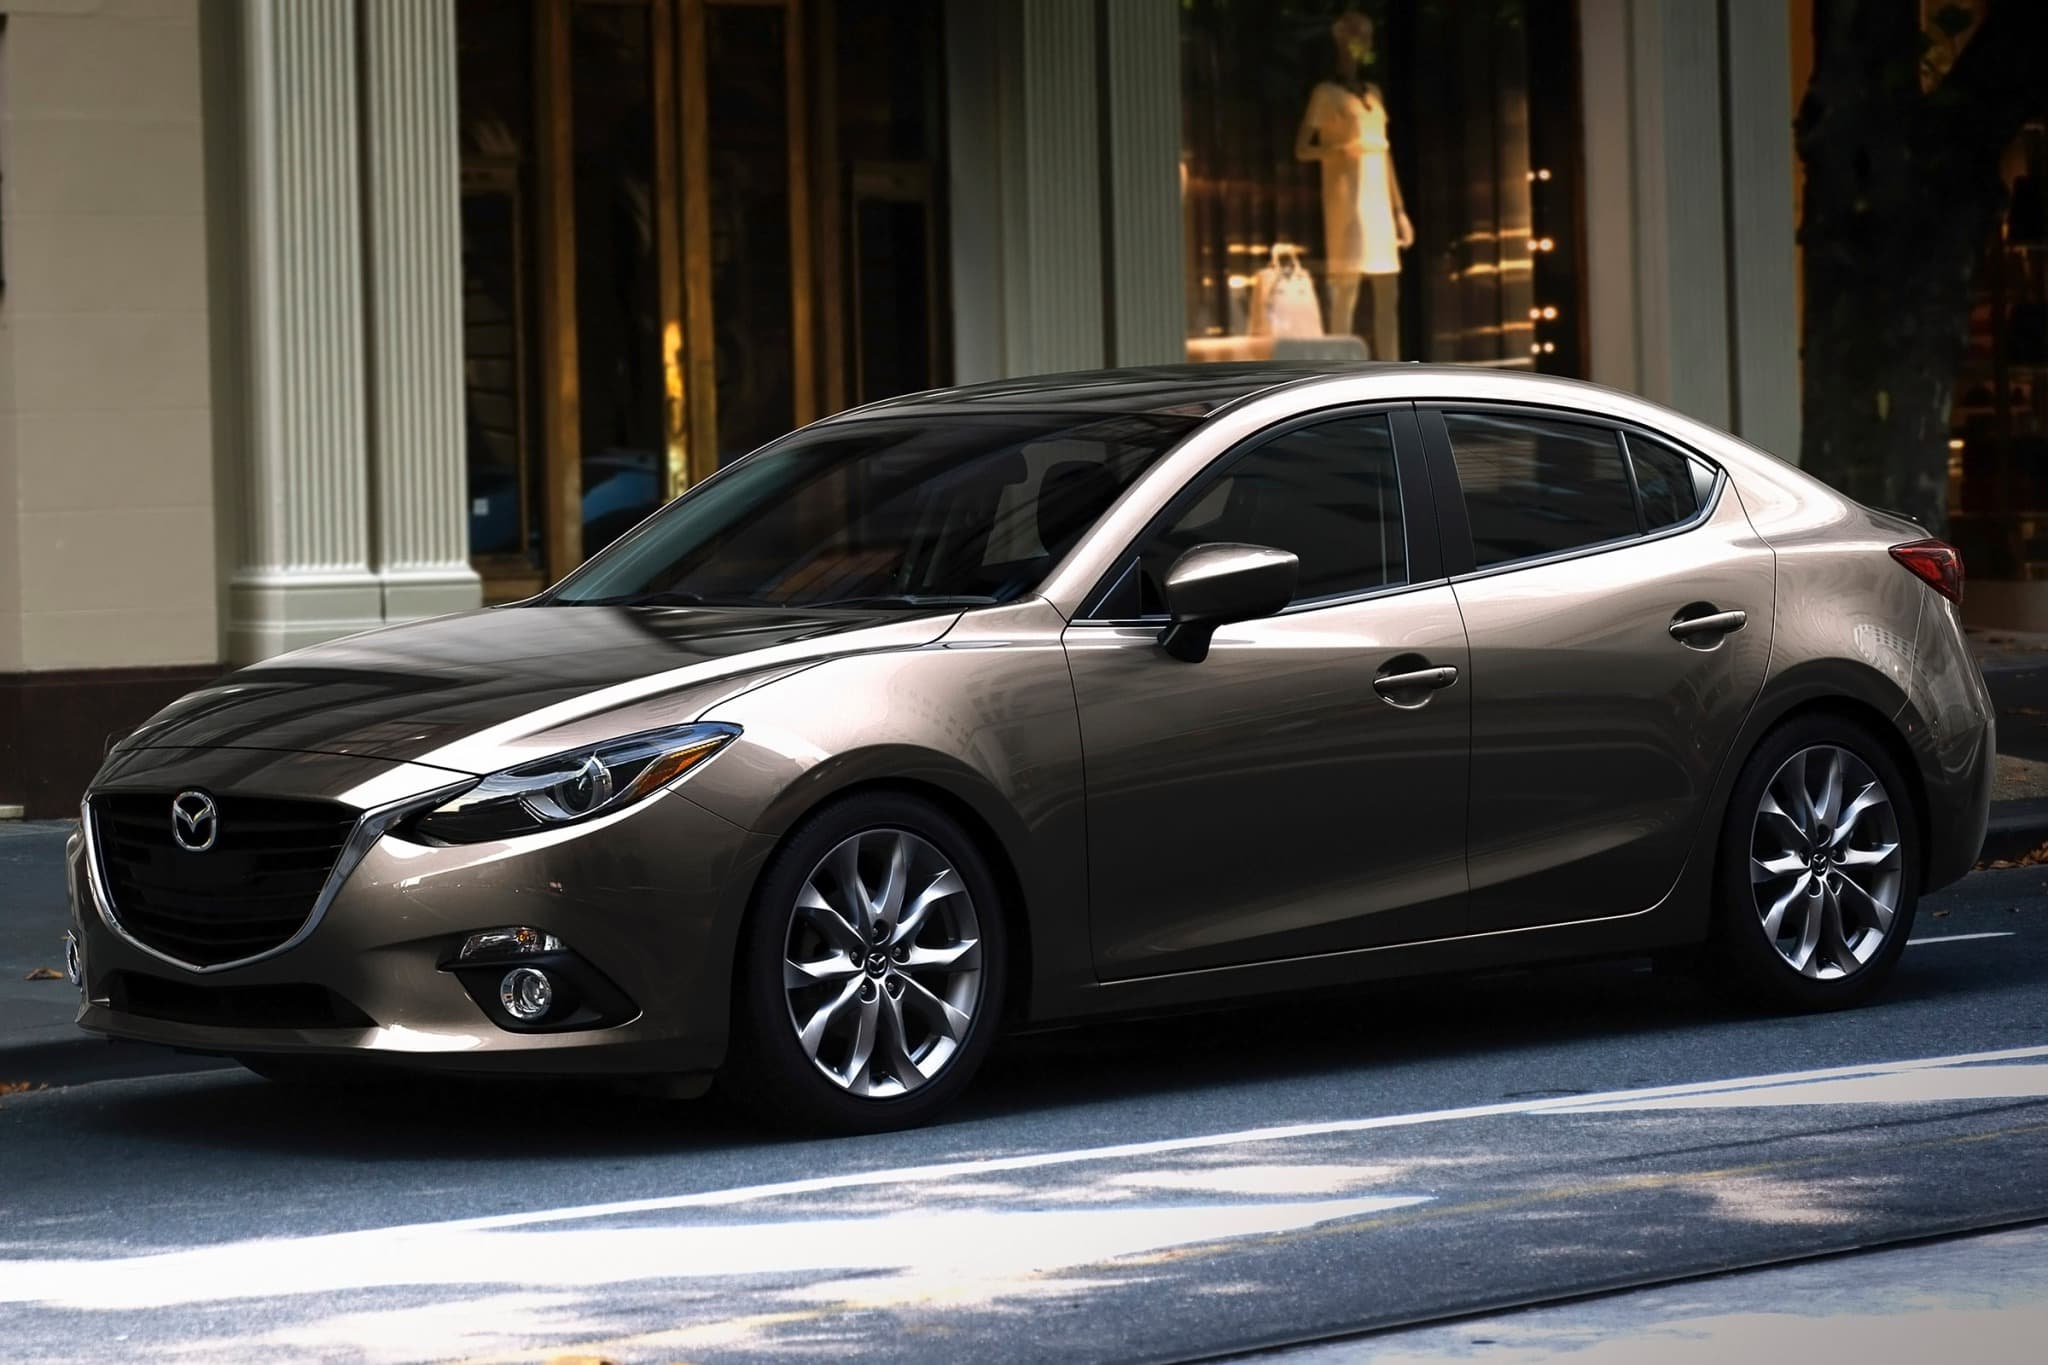 Toyota Camry Hd Wallpapers Mazda 3 2016 Sedan Wallpapers Hd High Quality Download